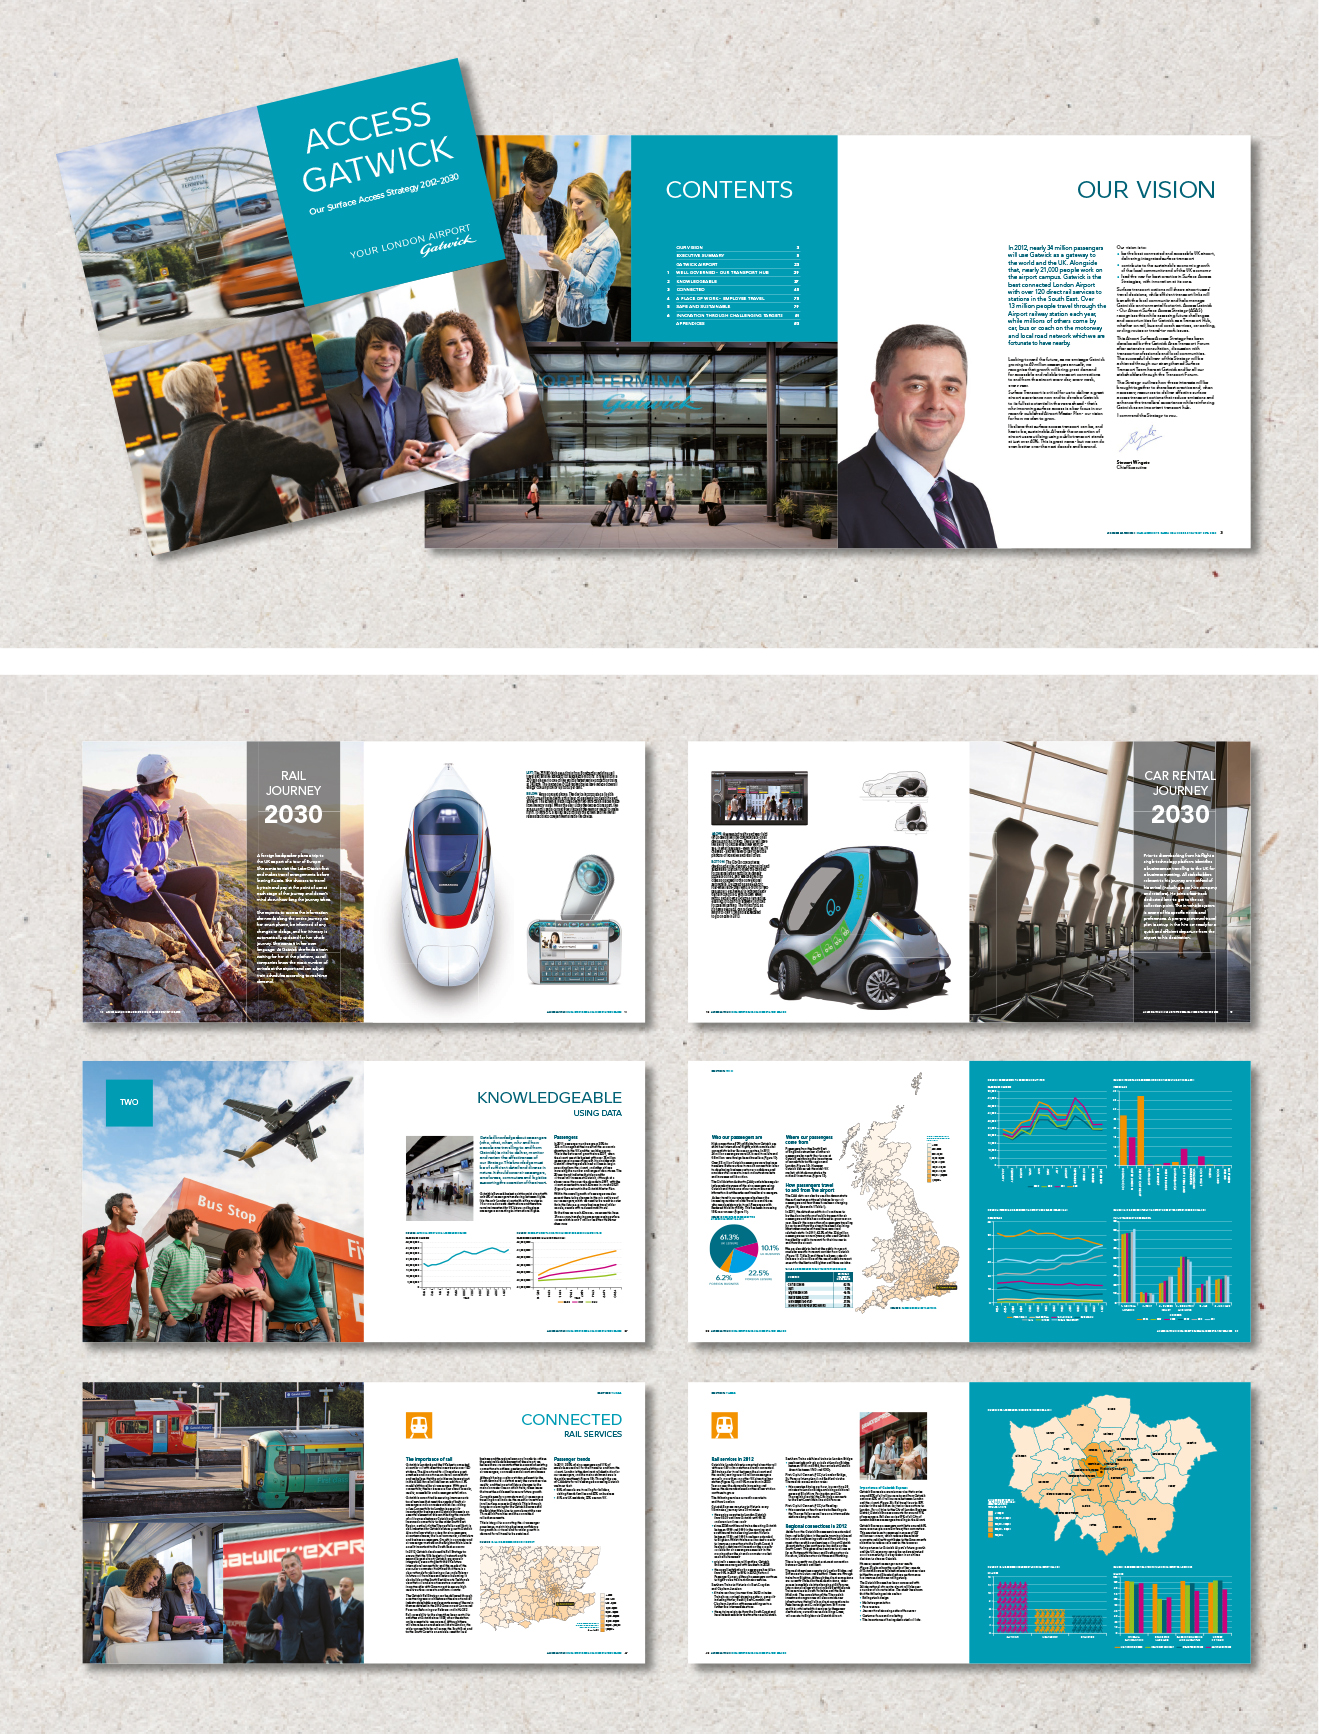 Image of a corporate brochure for Gatwick covering their Air Surface Access Strategy